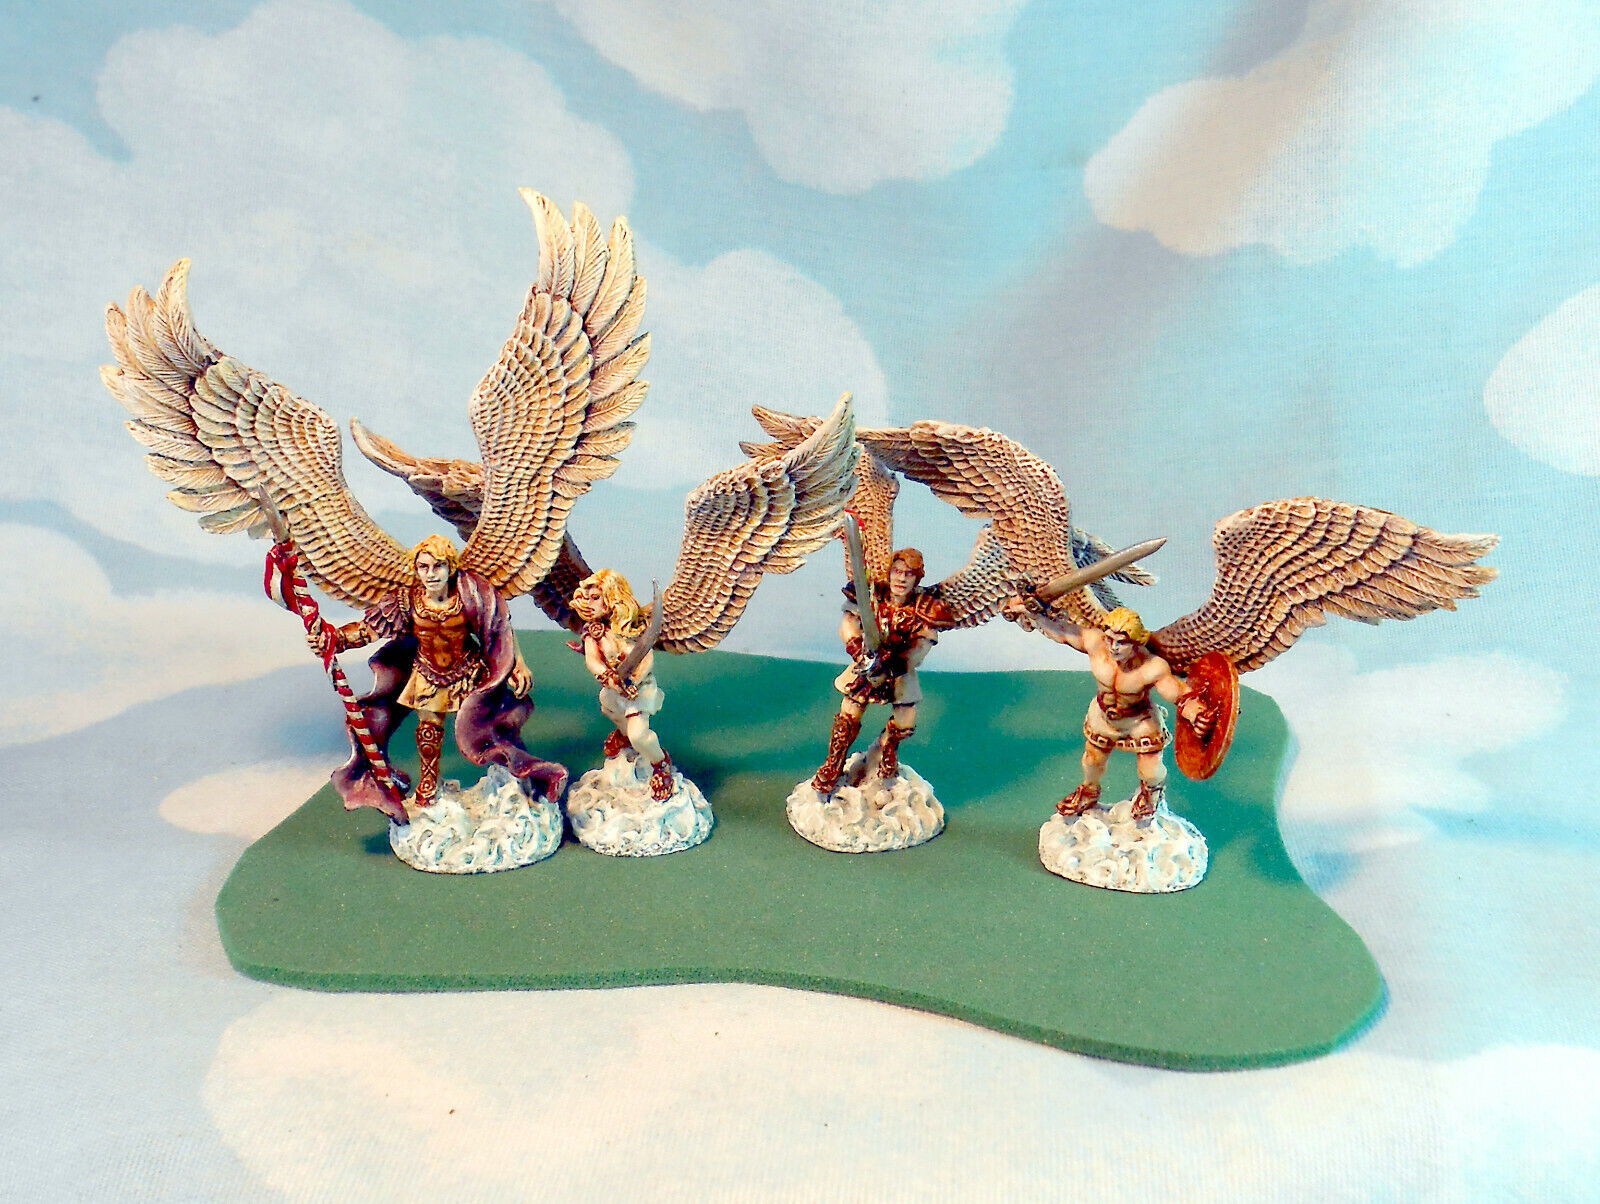 Angels - Reaper rpg role-playing game adventurer painted by JohnnyJukey d&d